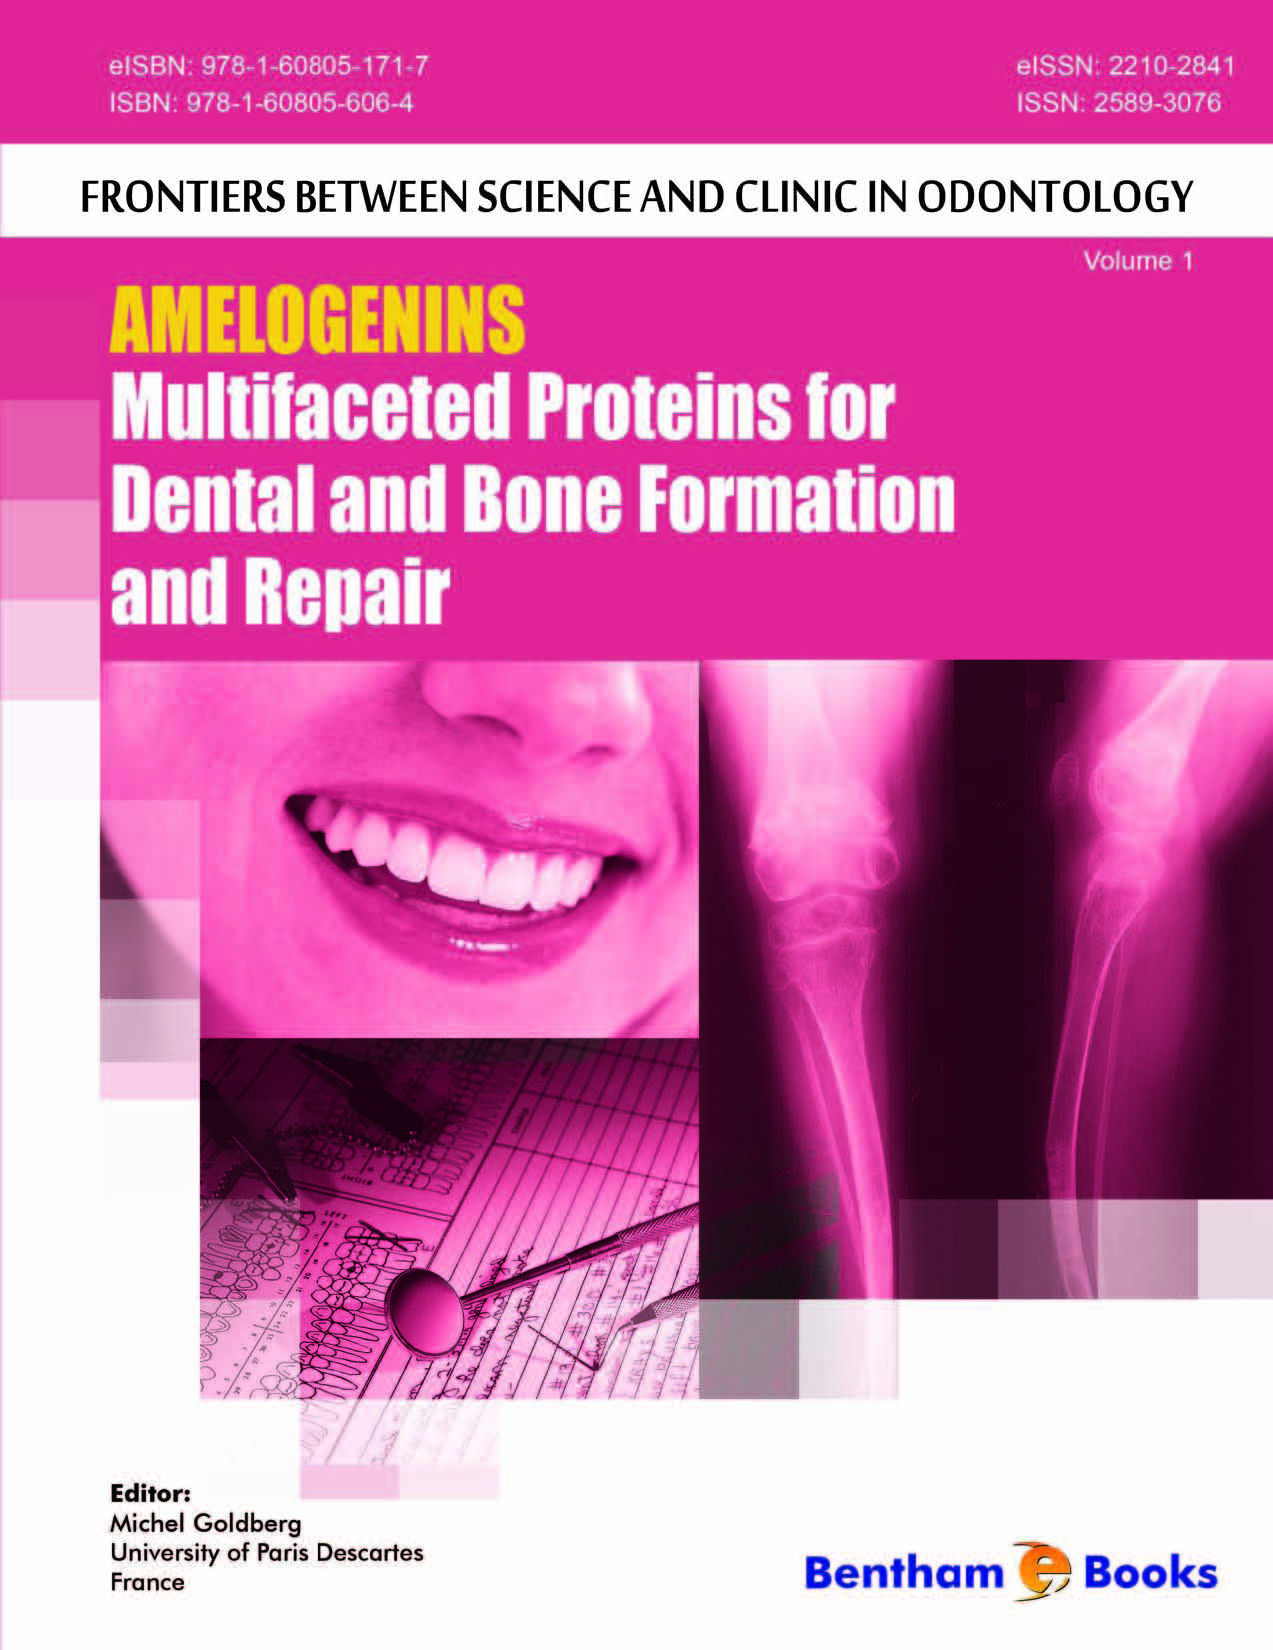 Amelogenins: Multifaceted Proteins for Dental and Bone Formation and Repair